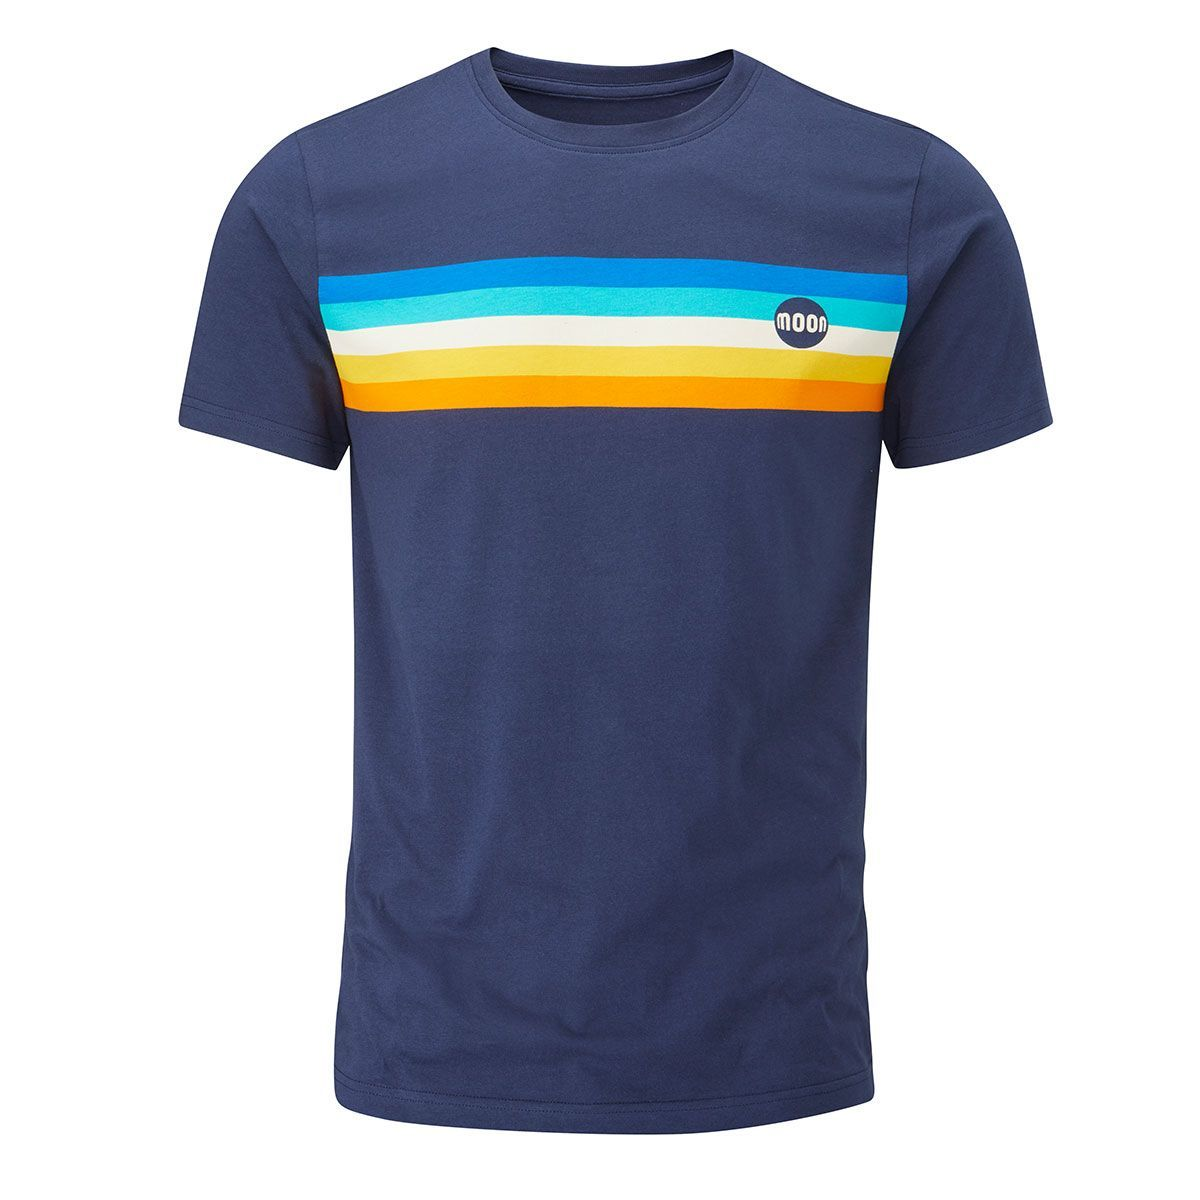 front view of the Moon Retro Stripe T-Shirt showing the stripes across the chest